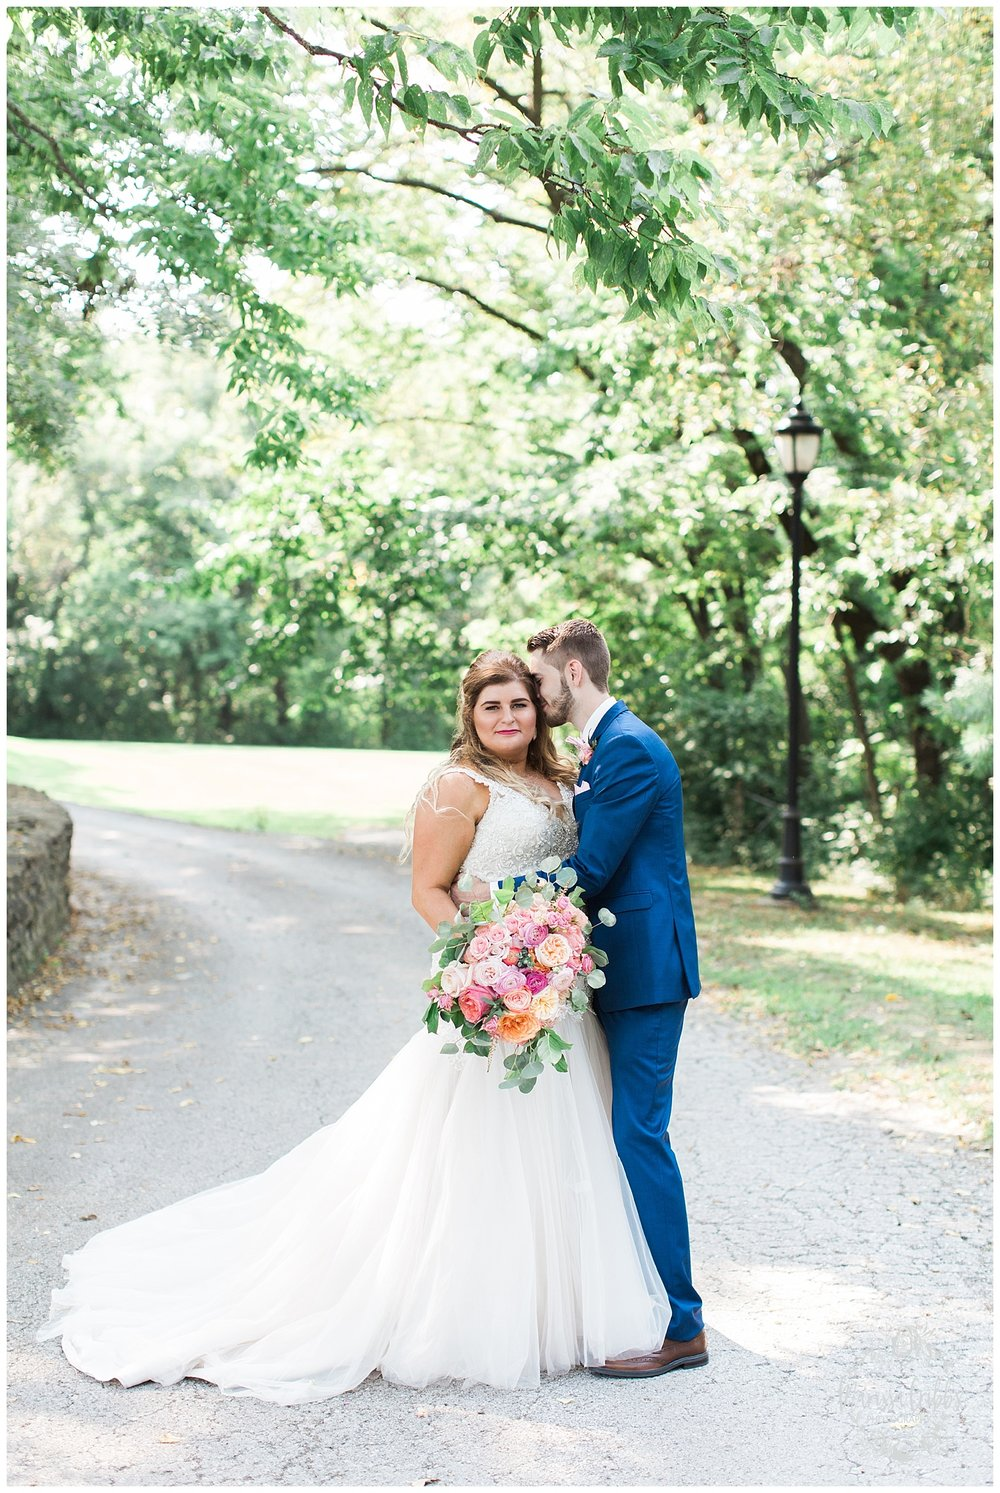 DANI & MICHAEL MARRIED | HAWTHORNE HOUSE WEDDING | MARISSA CRIBBS PHOTOGRAPHY_2644.jpg